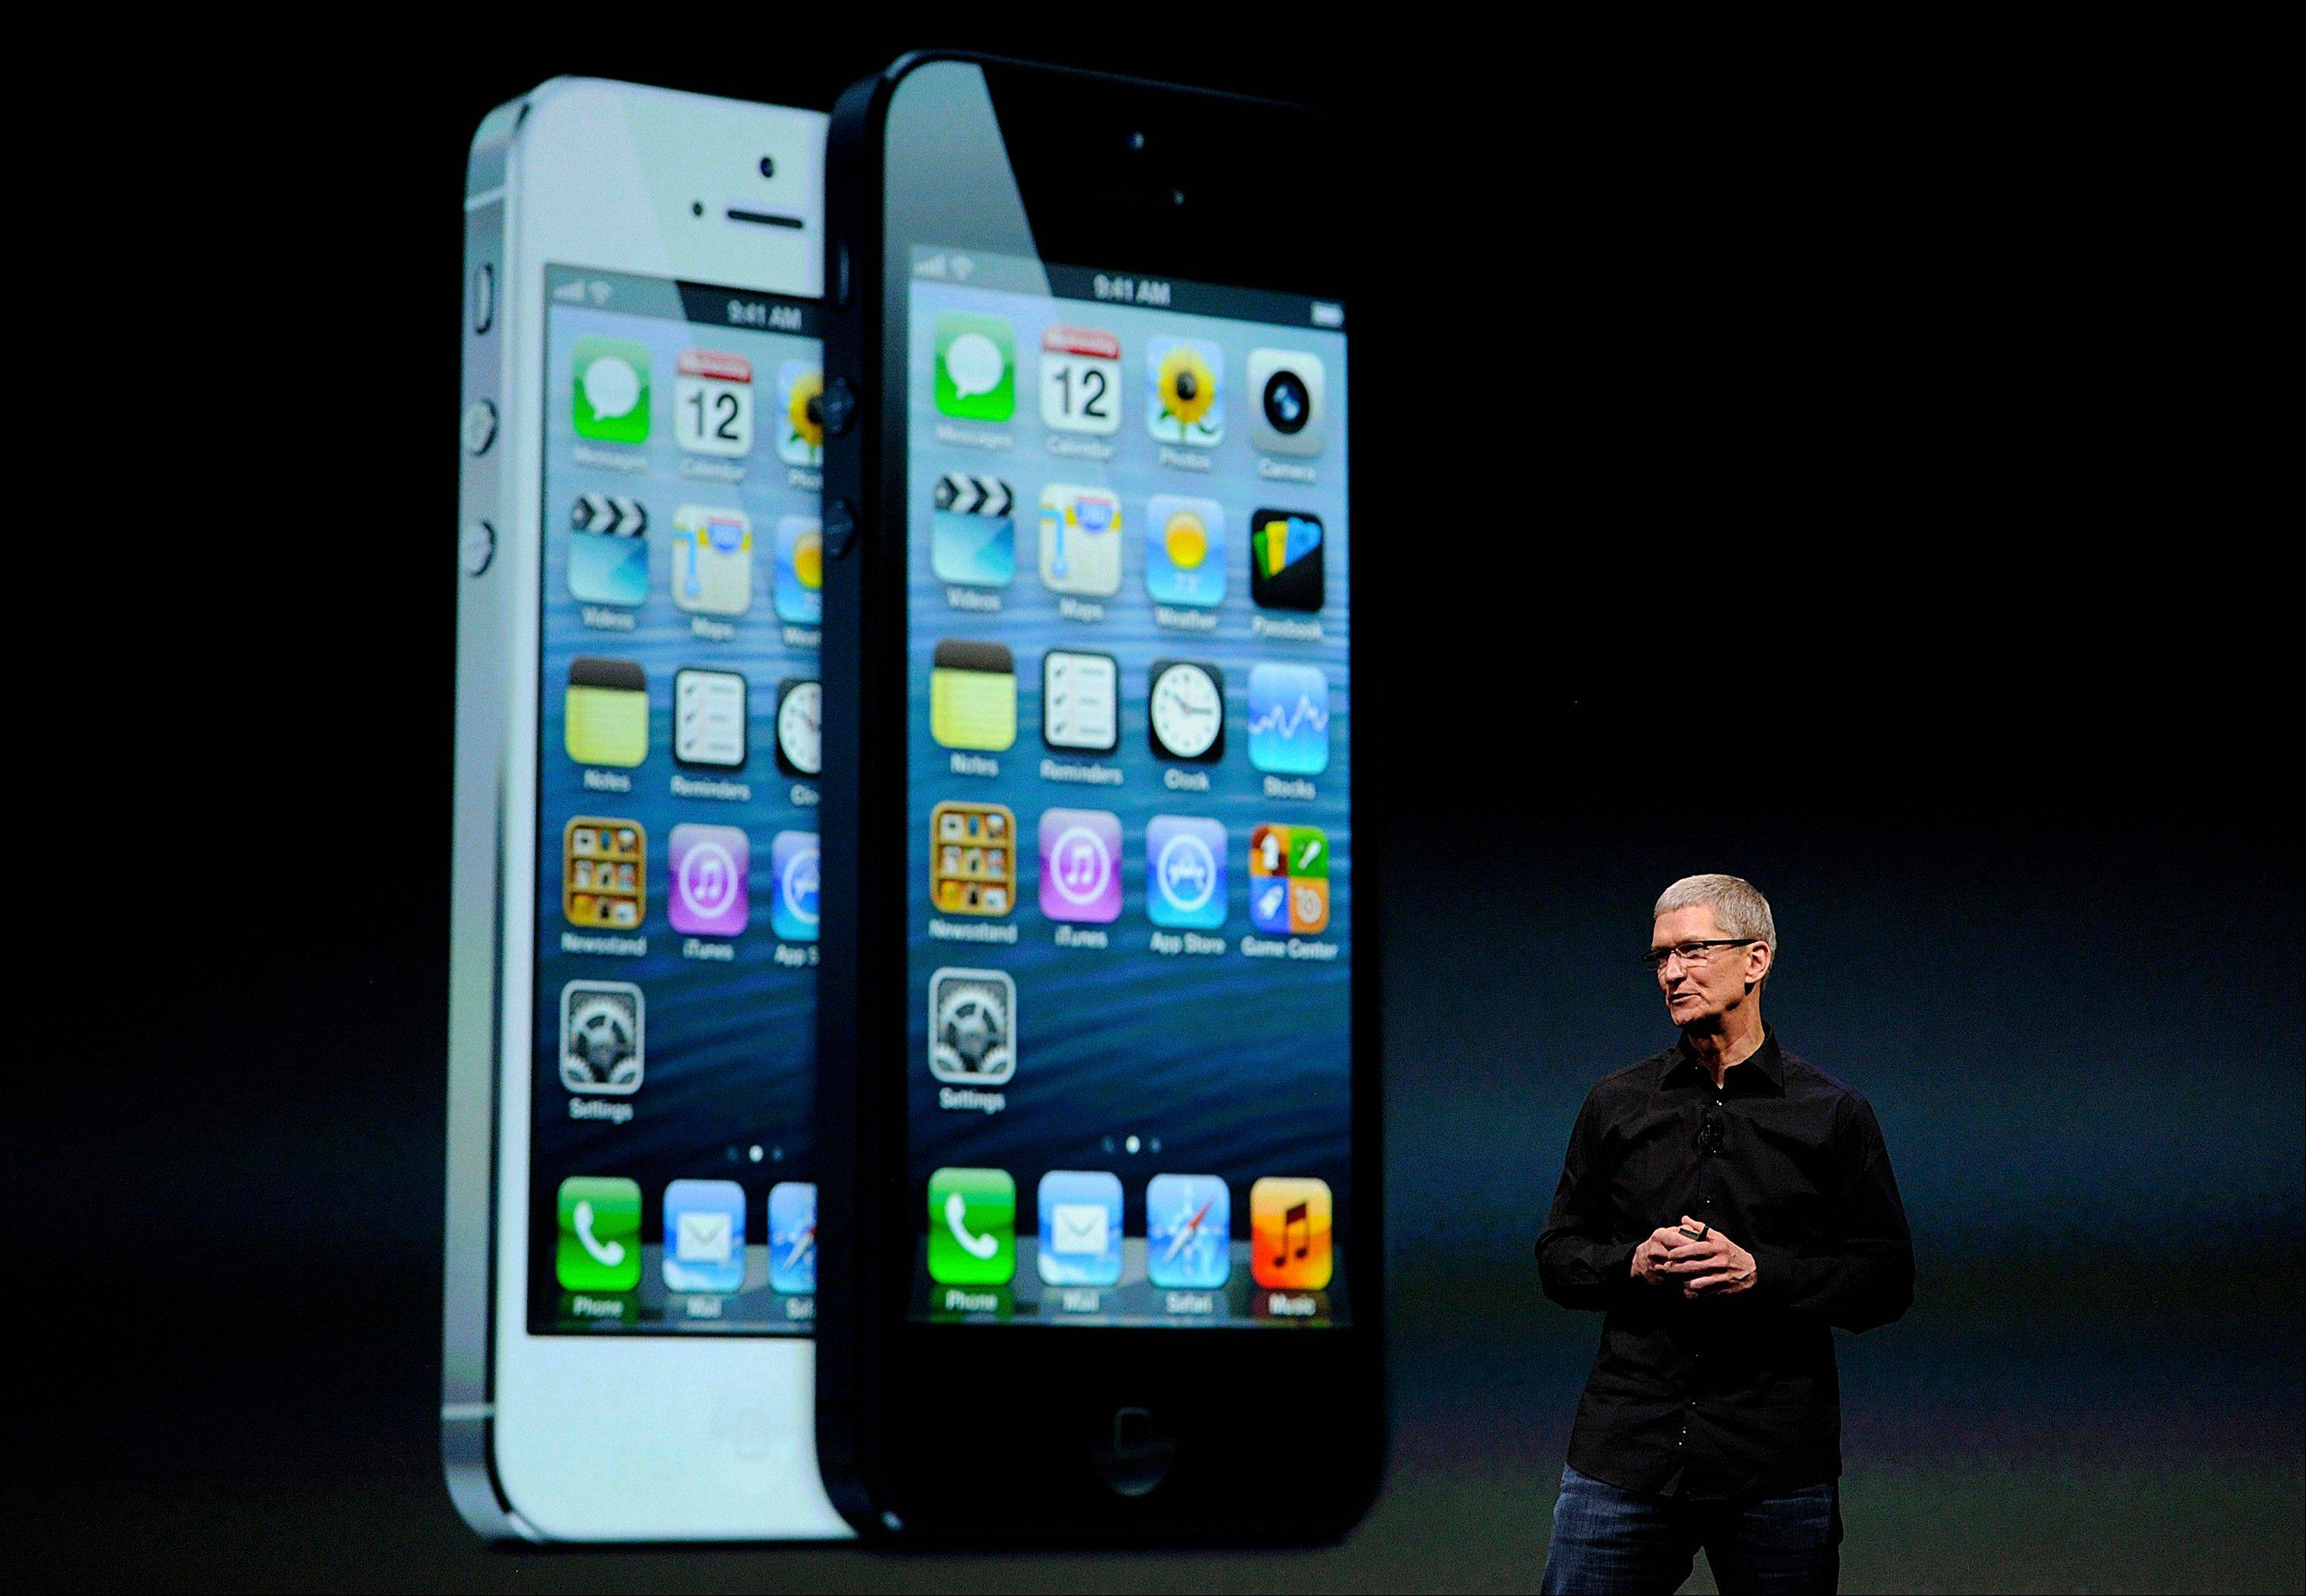 Tim Cook, chief executive officer of Apple Inc., speaks Wednesday during an event in San Francisco, California, U.S. Apple Inc. unveiled the iPhone 5 in an overhaul aimed at widening its lead over Samsung Electronics Co. and Google Inc. in the $219.1 billion smartphone market.